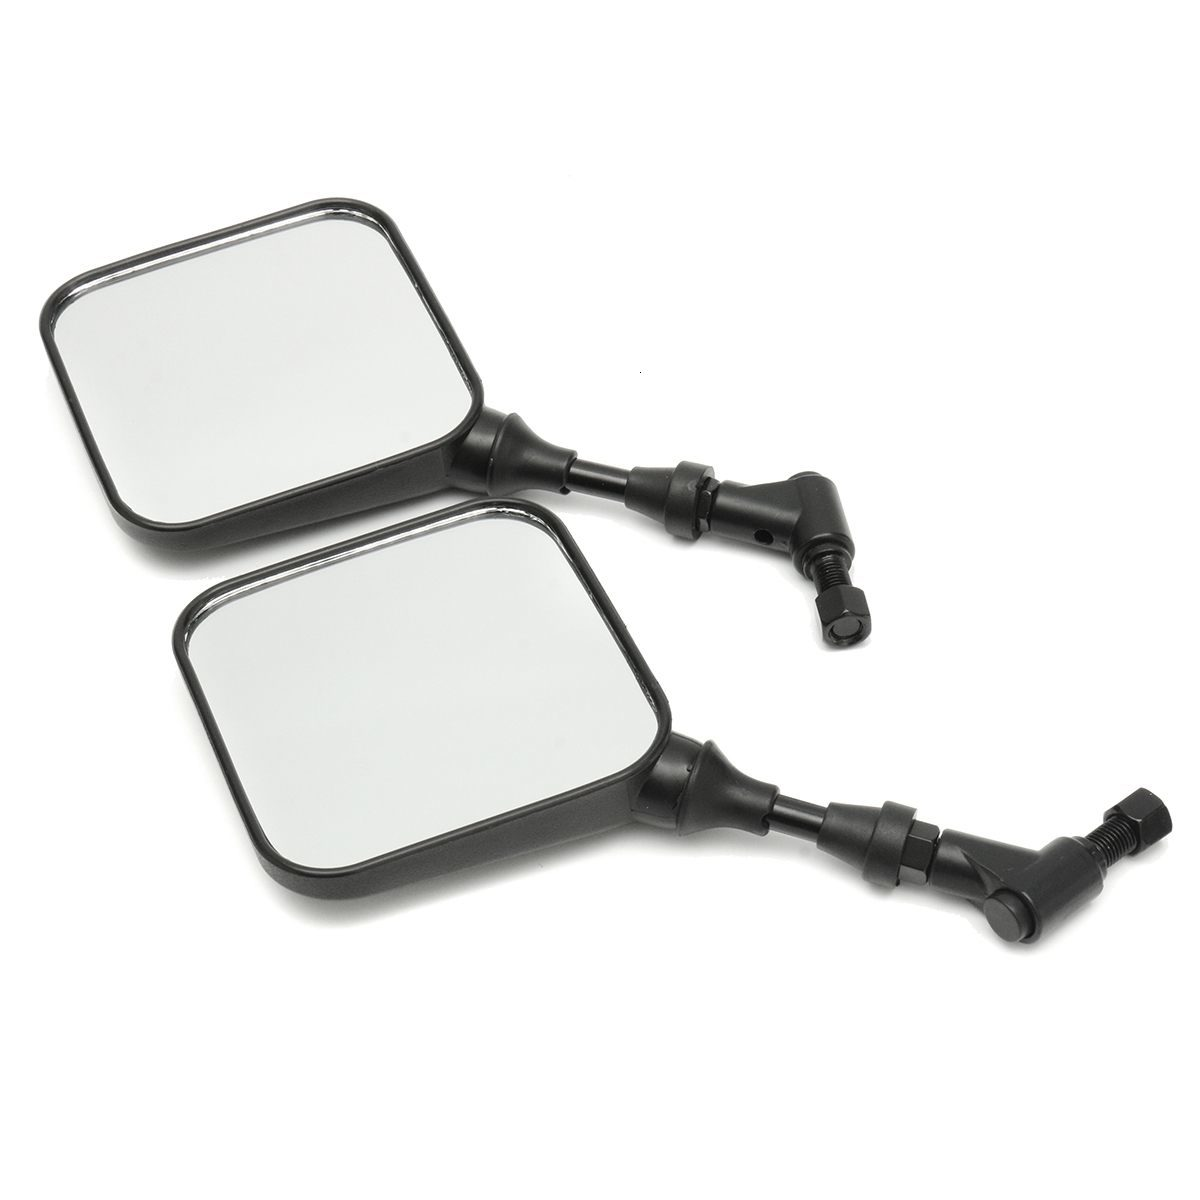 1Pair Motorcycle Mirrors Rear View Side Mirrors For Suzuki DR 200 250 DR350 350 DRZ 400 650 DR650 Moto Accessories image